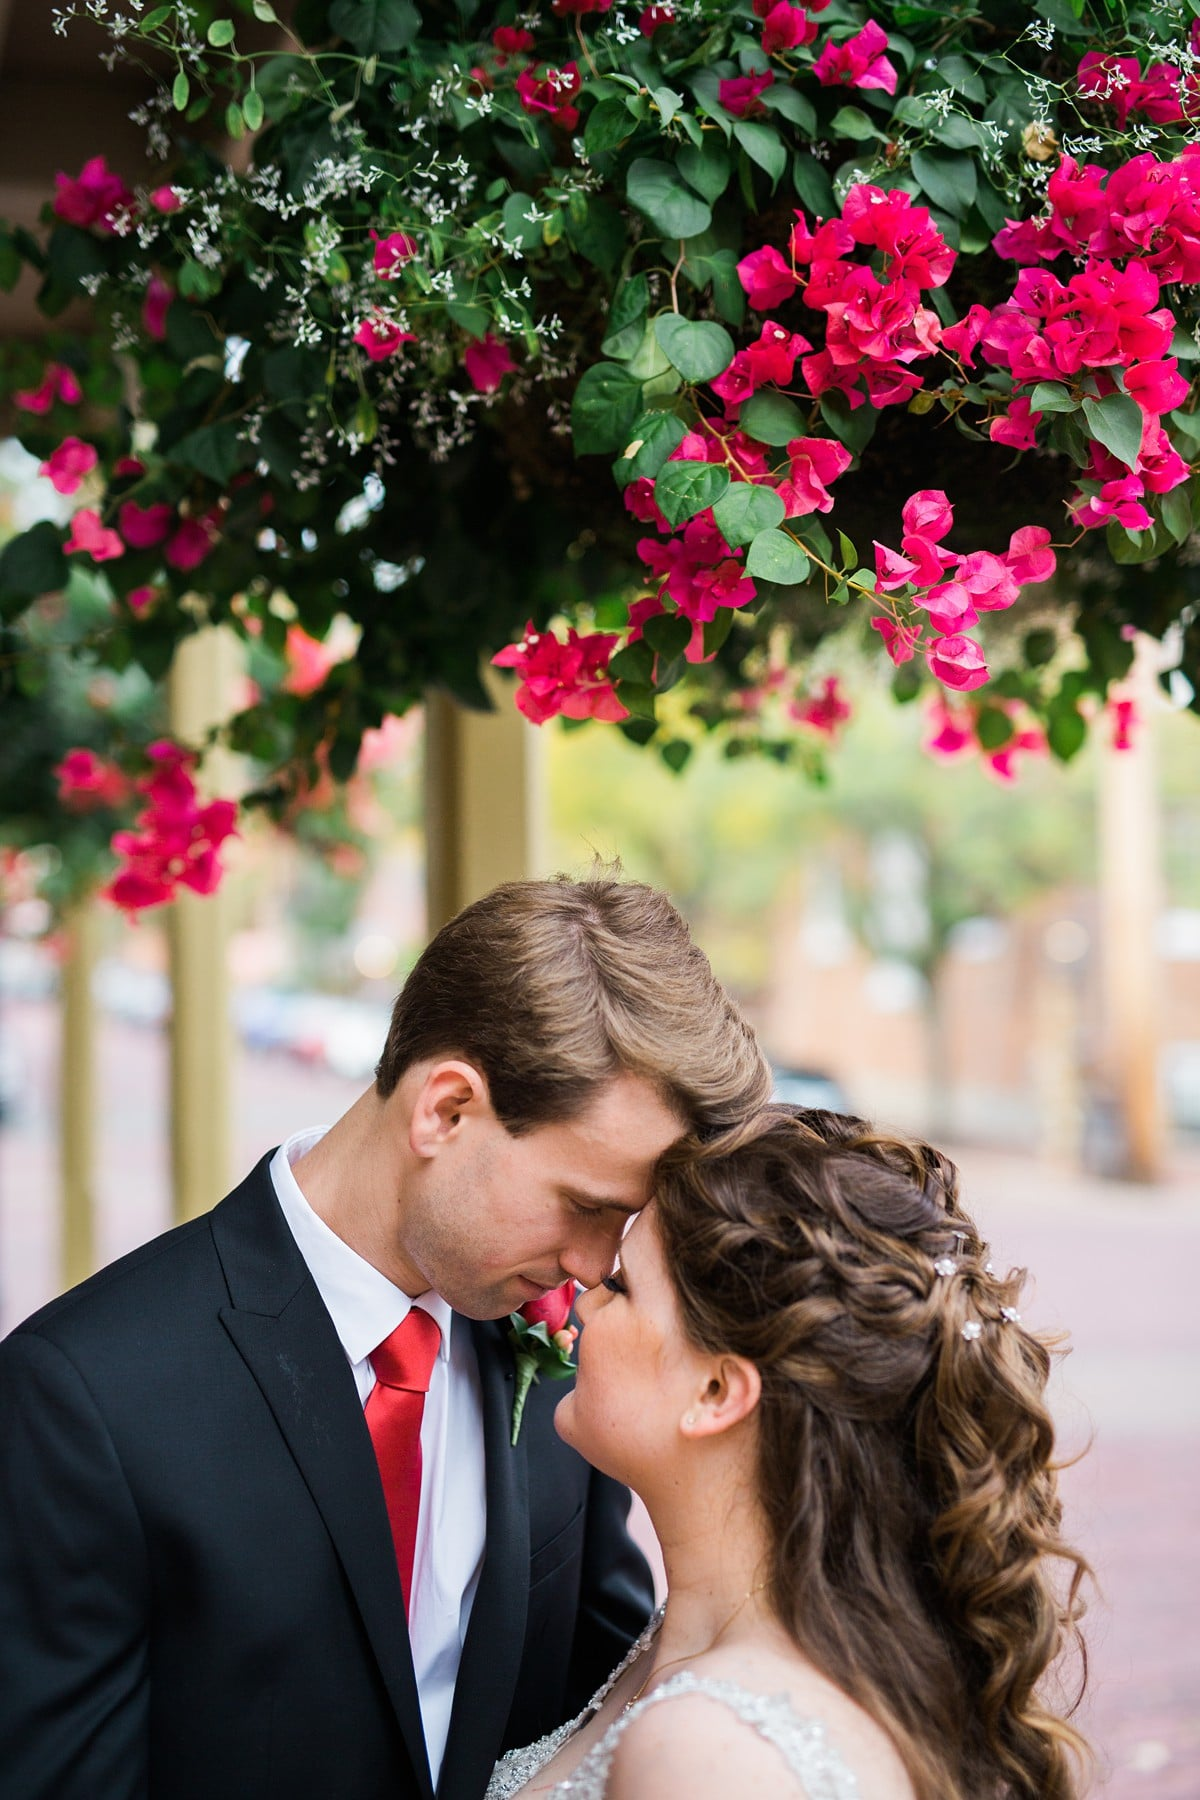 Bride and Groom Portrait, Bride and Groom Poses, Wedding Photography Poses, St. Louis Wedding Photographer